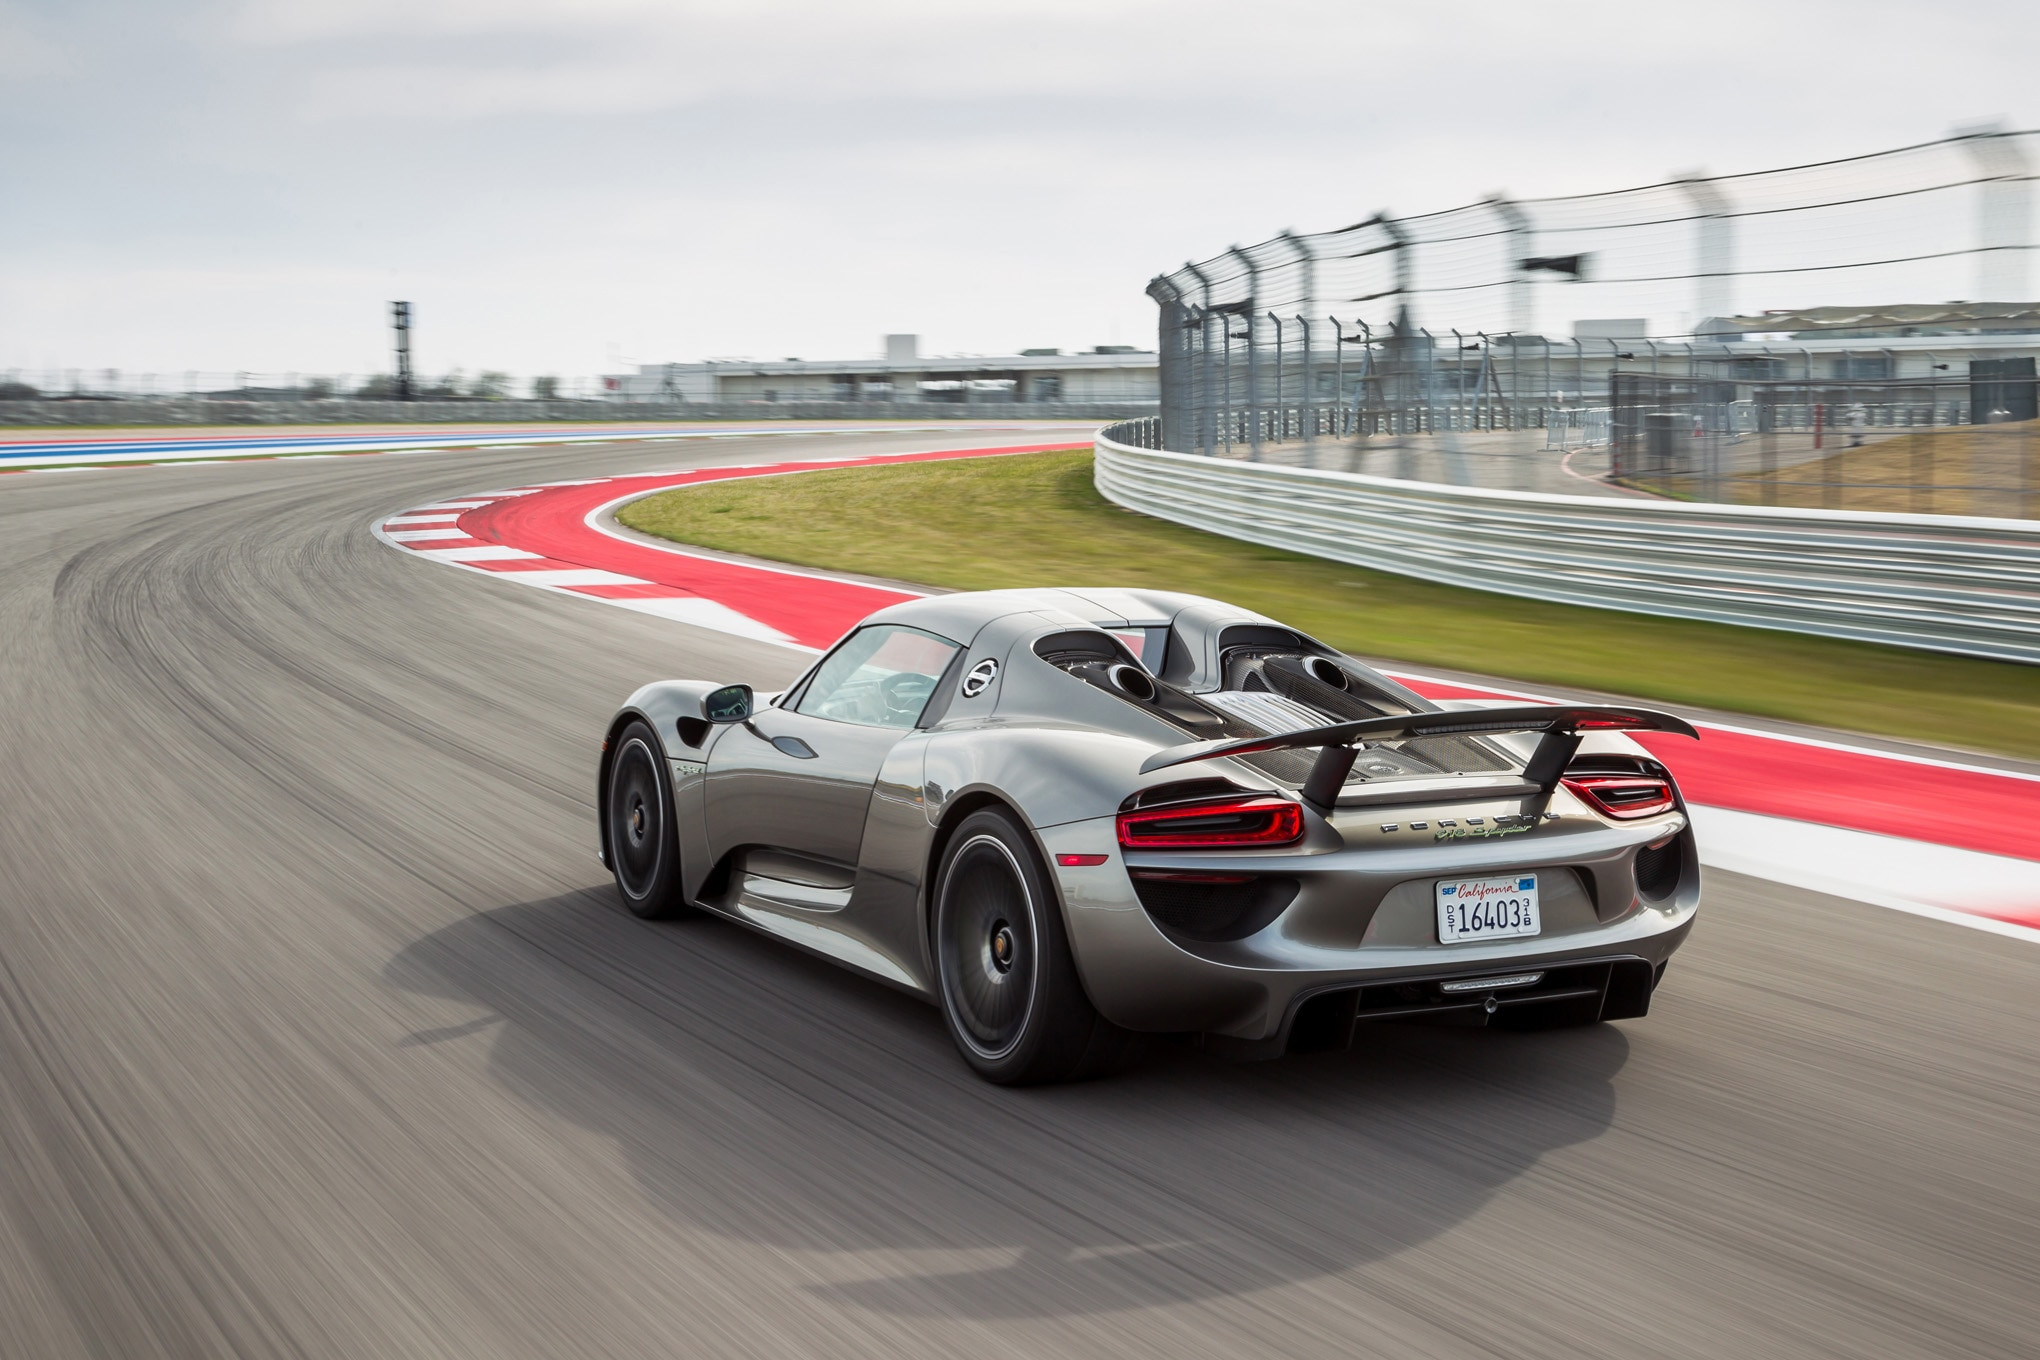 2015-Porsche-918-Spyder-rear-three-quarters-in-motion-02 Cozy Porsche 918 Spyder Concept Price Real Racing 3 Cars Trend